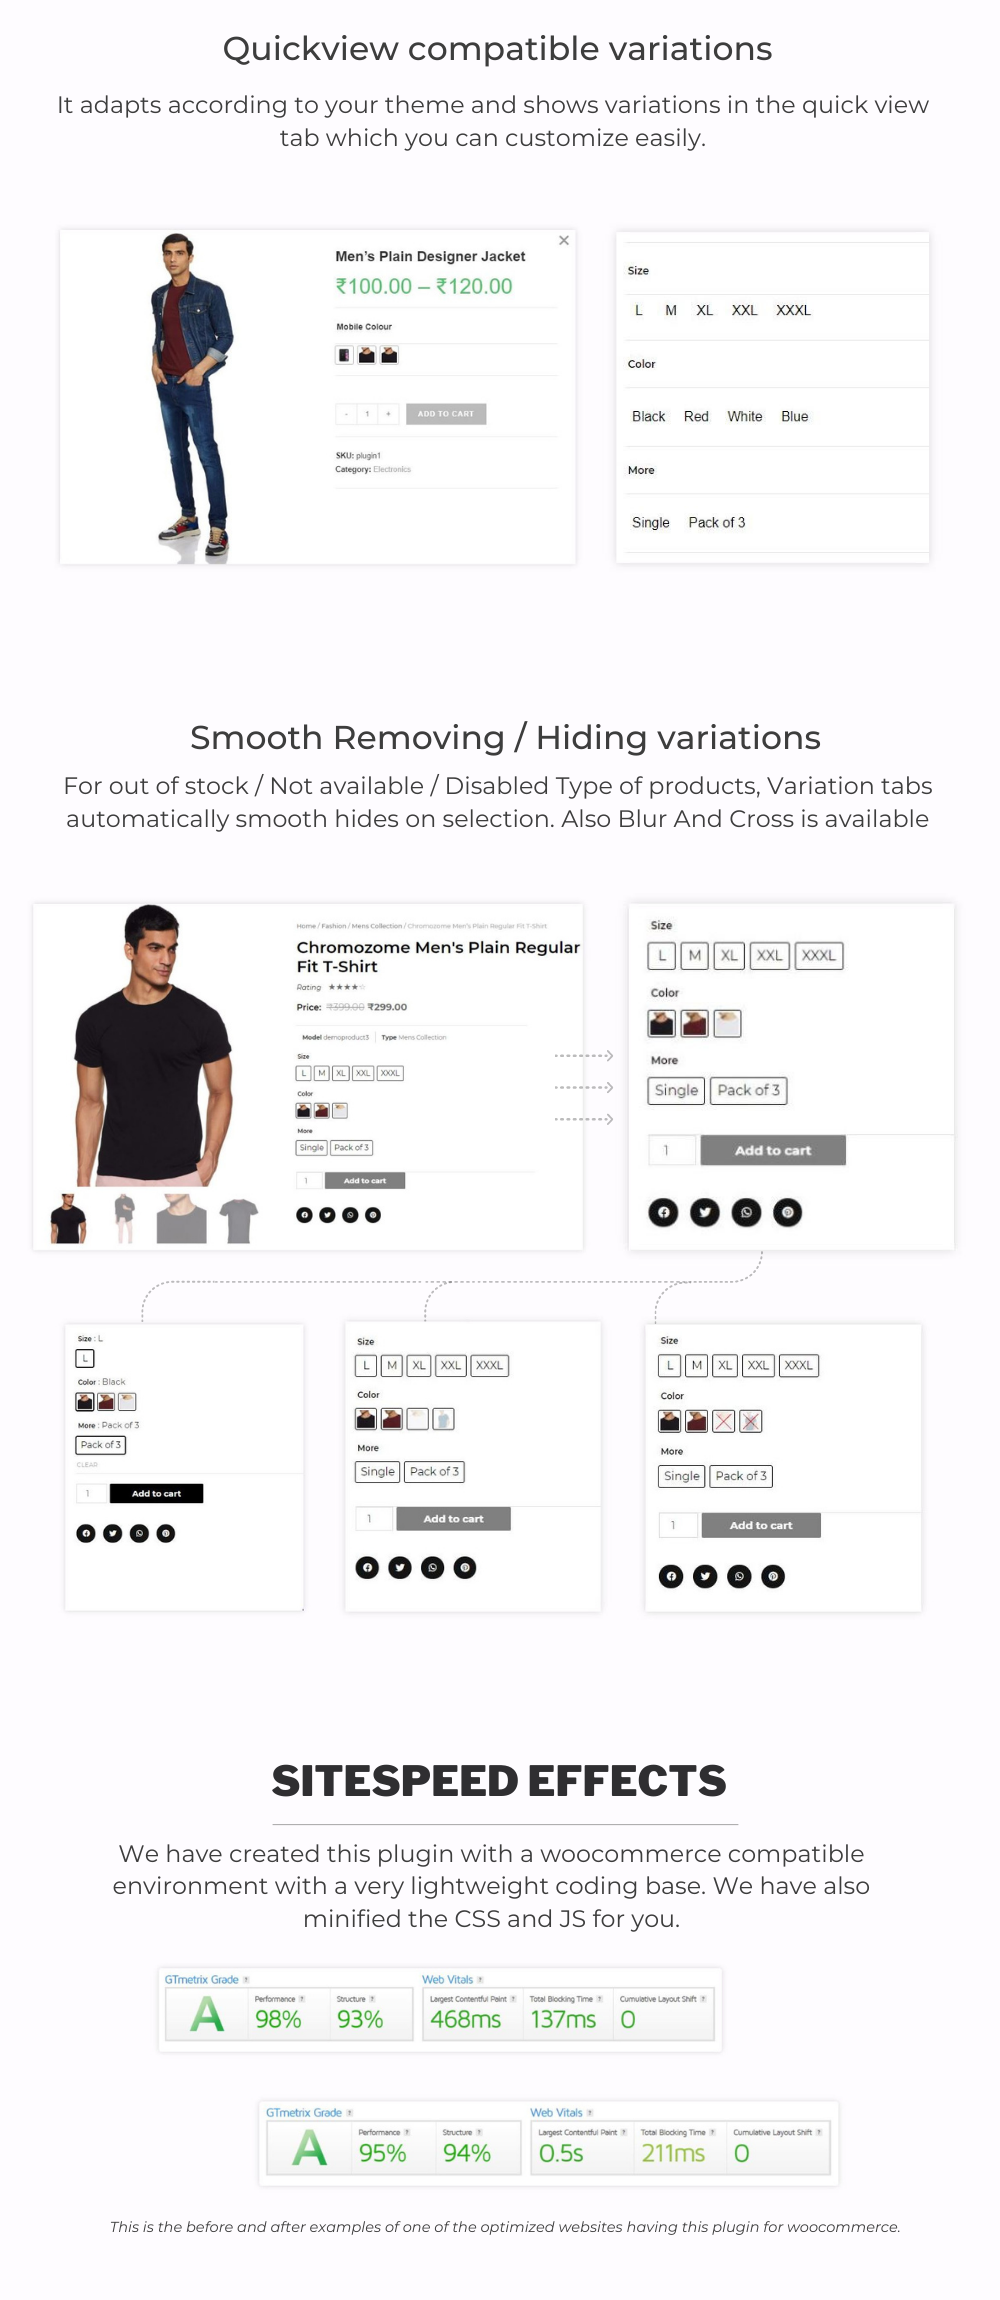 WordPress additional variations and swatches images